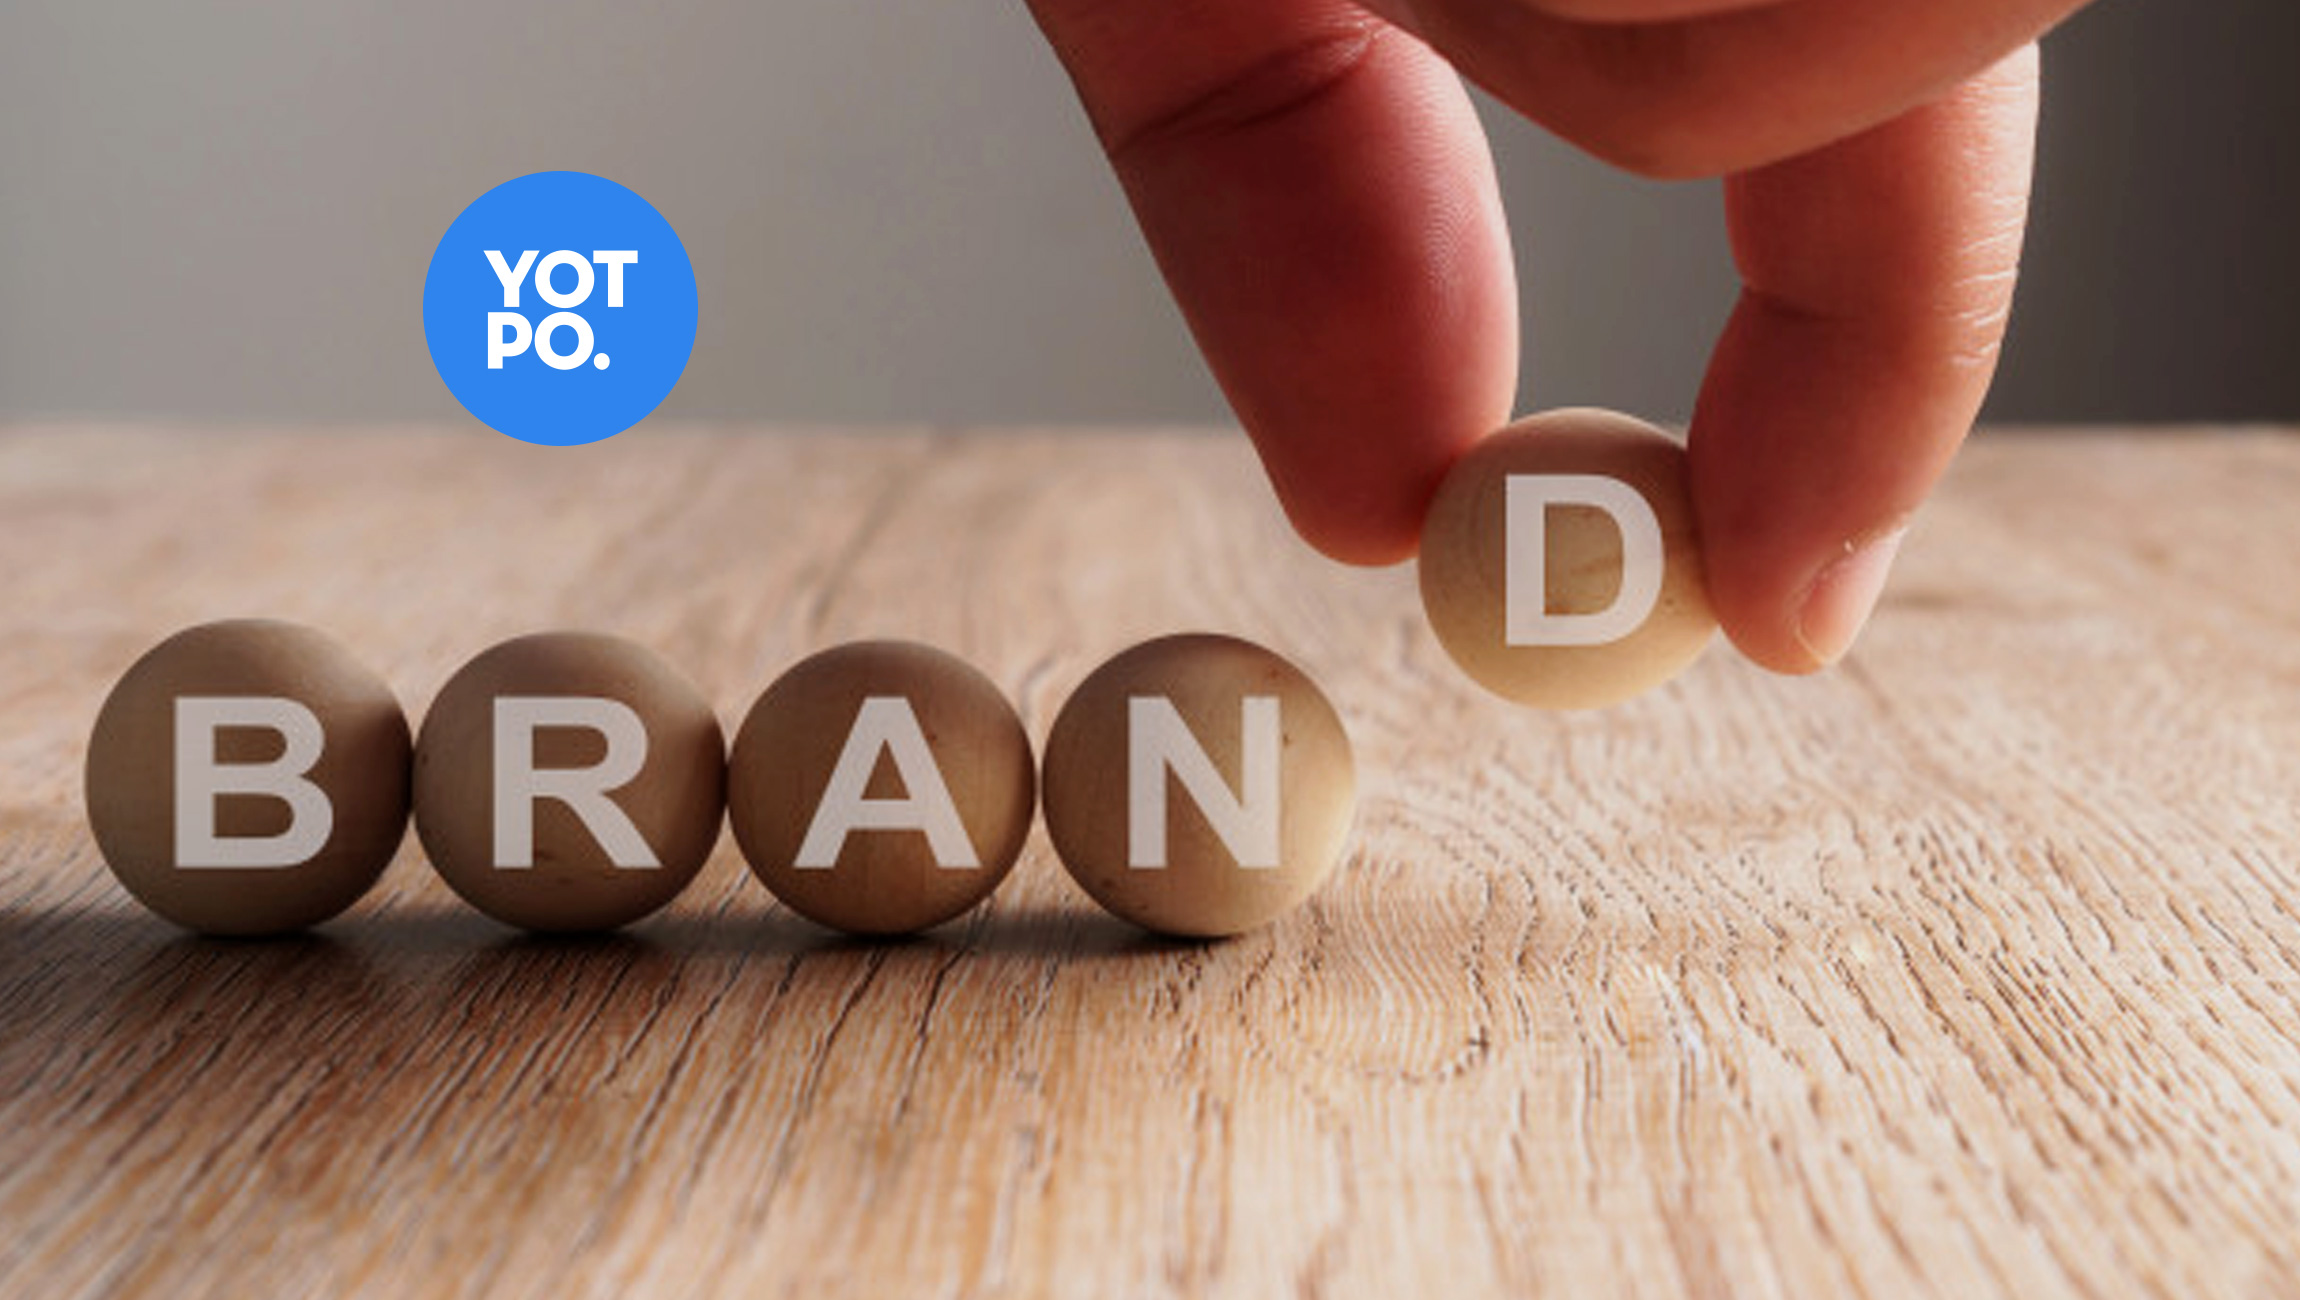 New Data Reveals That Brand Loyalty Is on the Rise Among Consumers